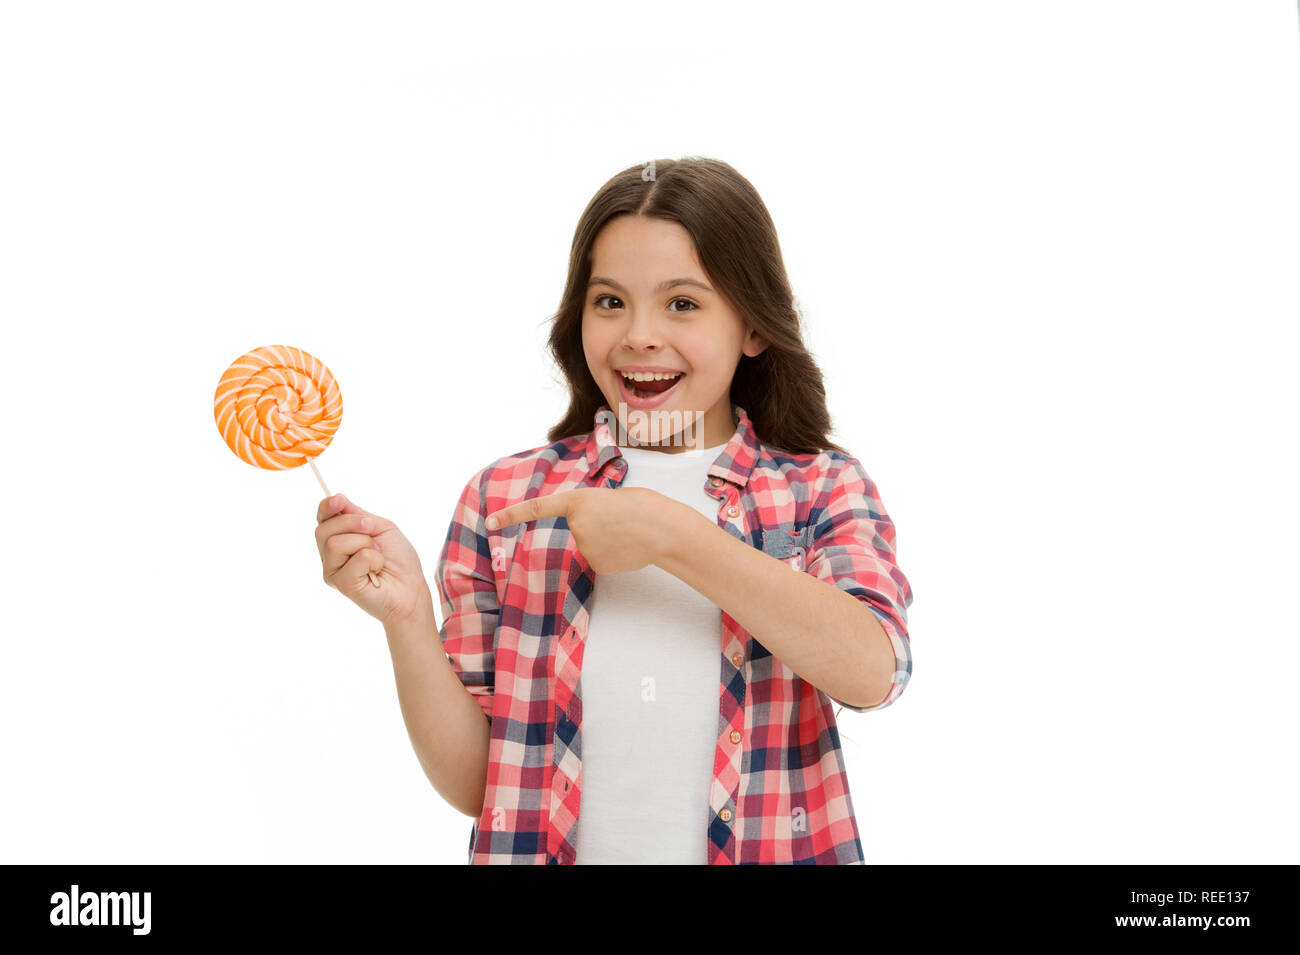 Impressing fact sugar nutrition. Girl child smiling holds lollipop candy. Girl kid with lollipop looks surprised. Healthy nutrition and dieting concept. Surprising effect sugar. Holiday sweet treats. - Stock Image